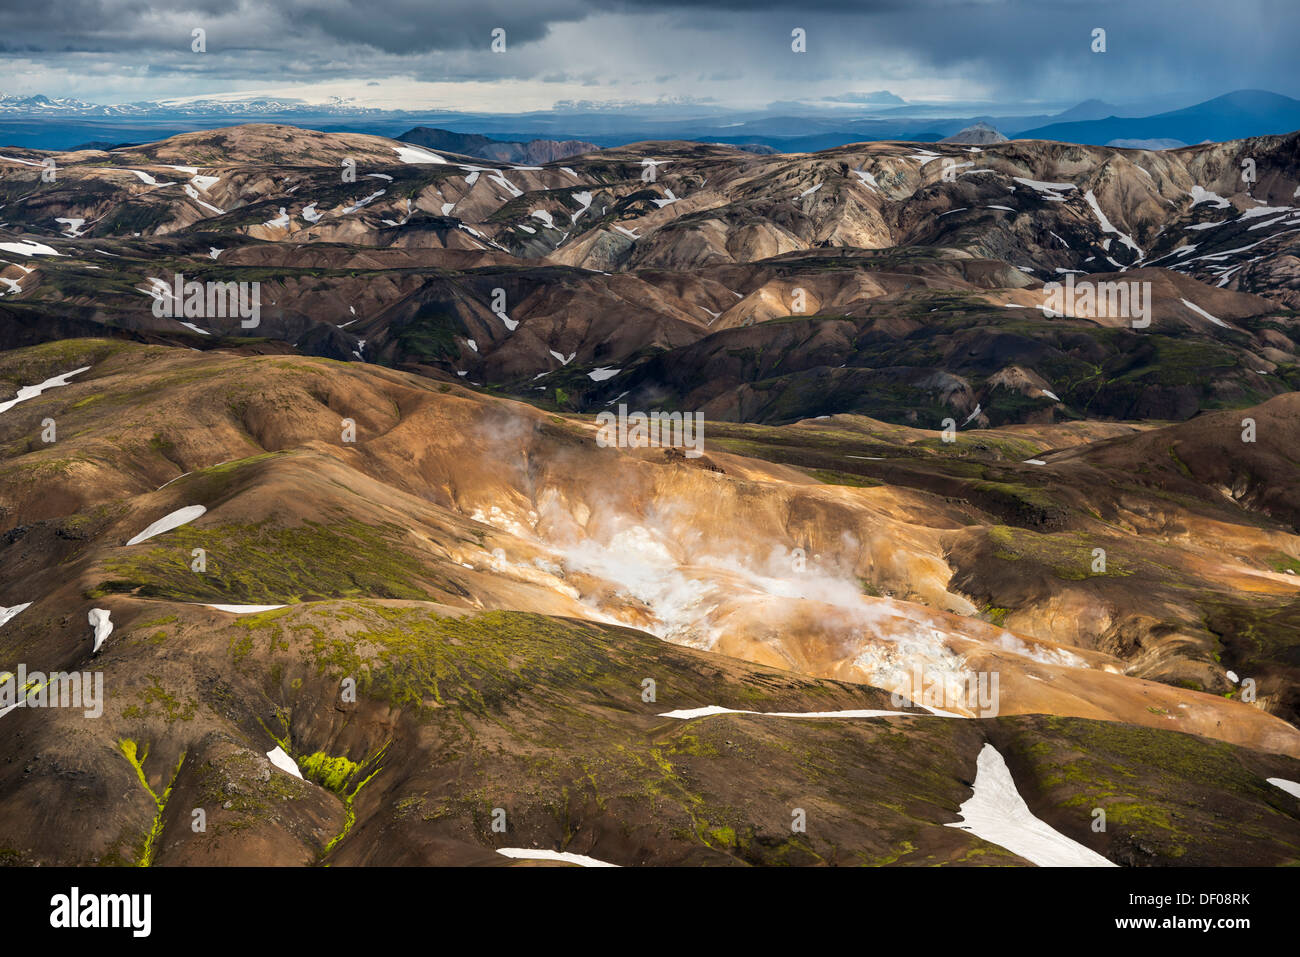 Aerial view, high-temperature area, geothermal area, rhyolite mountains partially covered with snow, Landmannalaugar - Stock Image